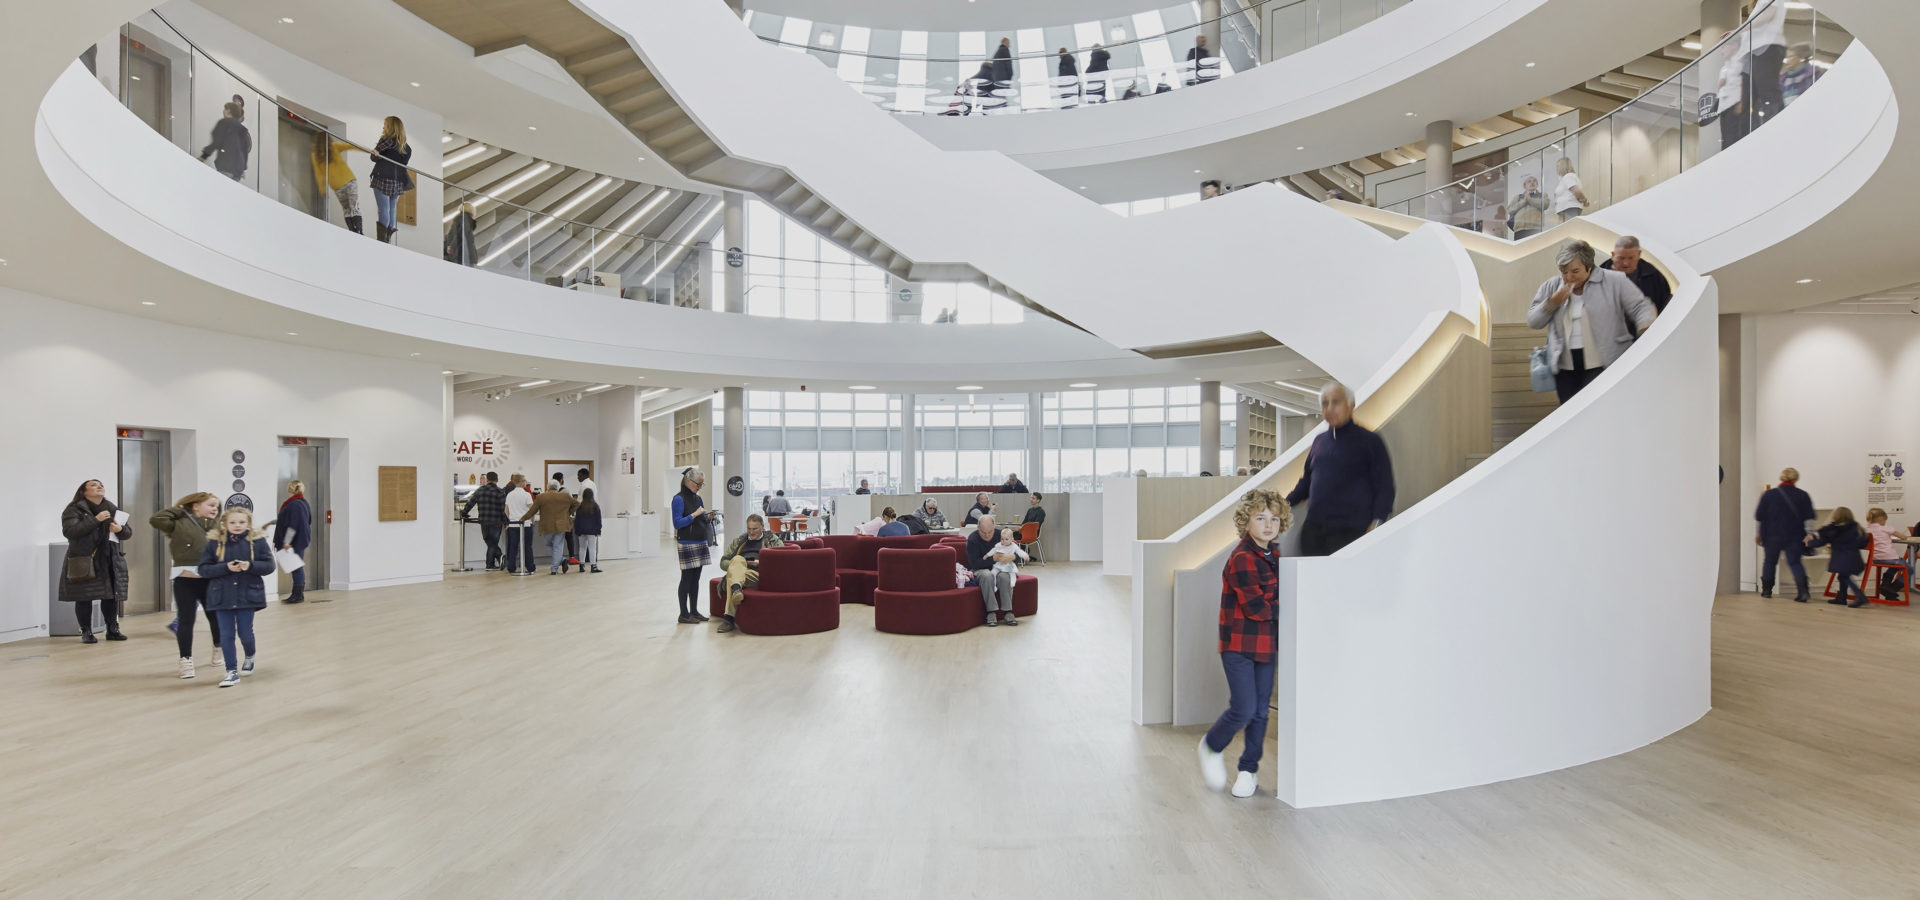 The Word South Shields Vast Circular Atrium Space Feature Stair Hh